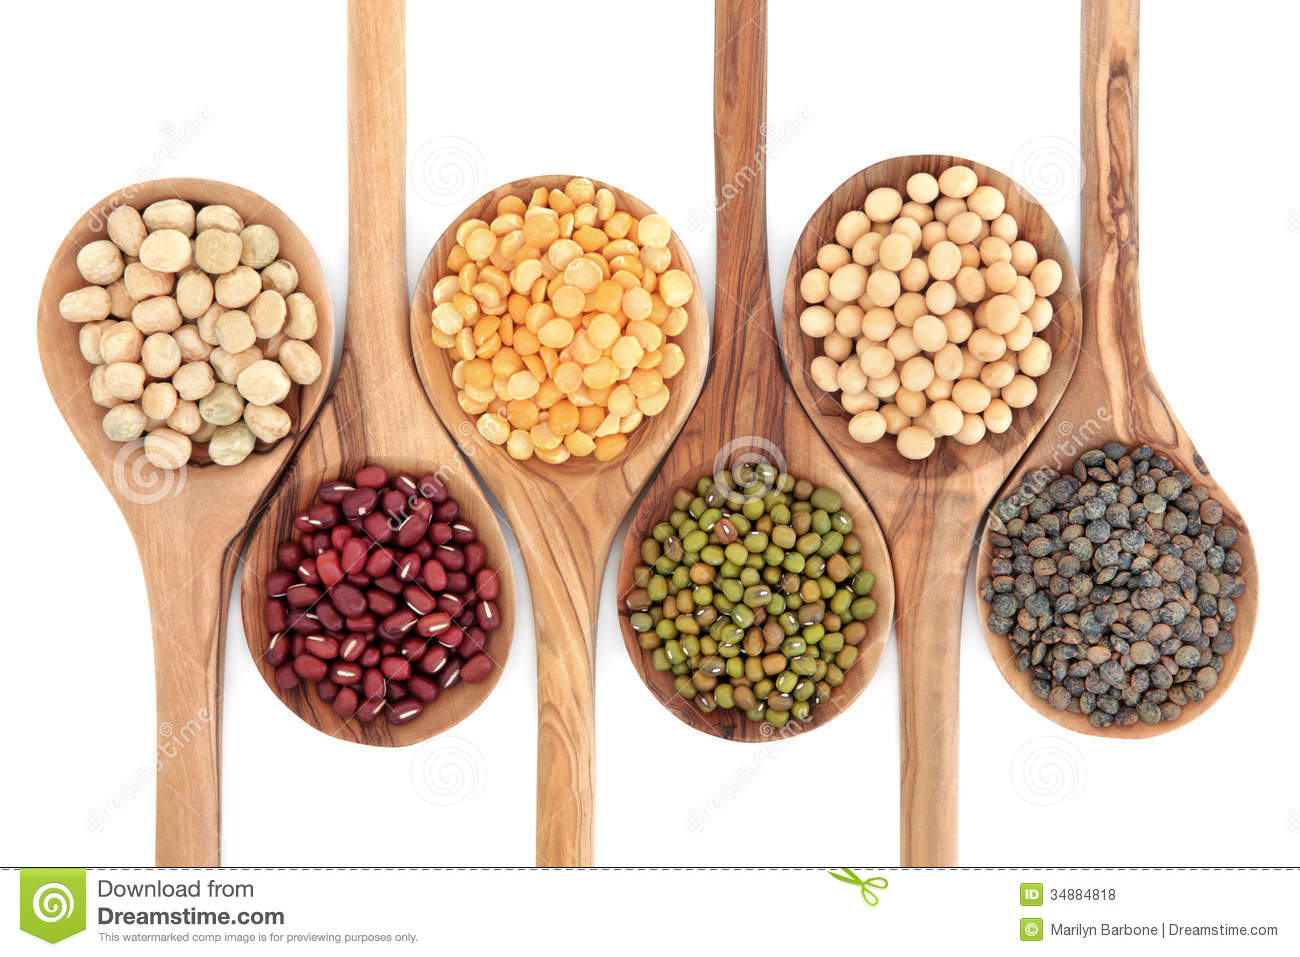 Pulses food selection in olive wood spoons over white background.